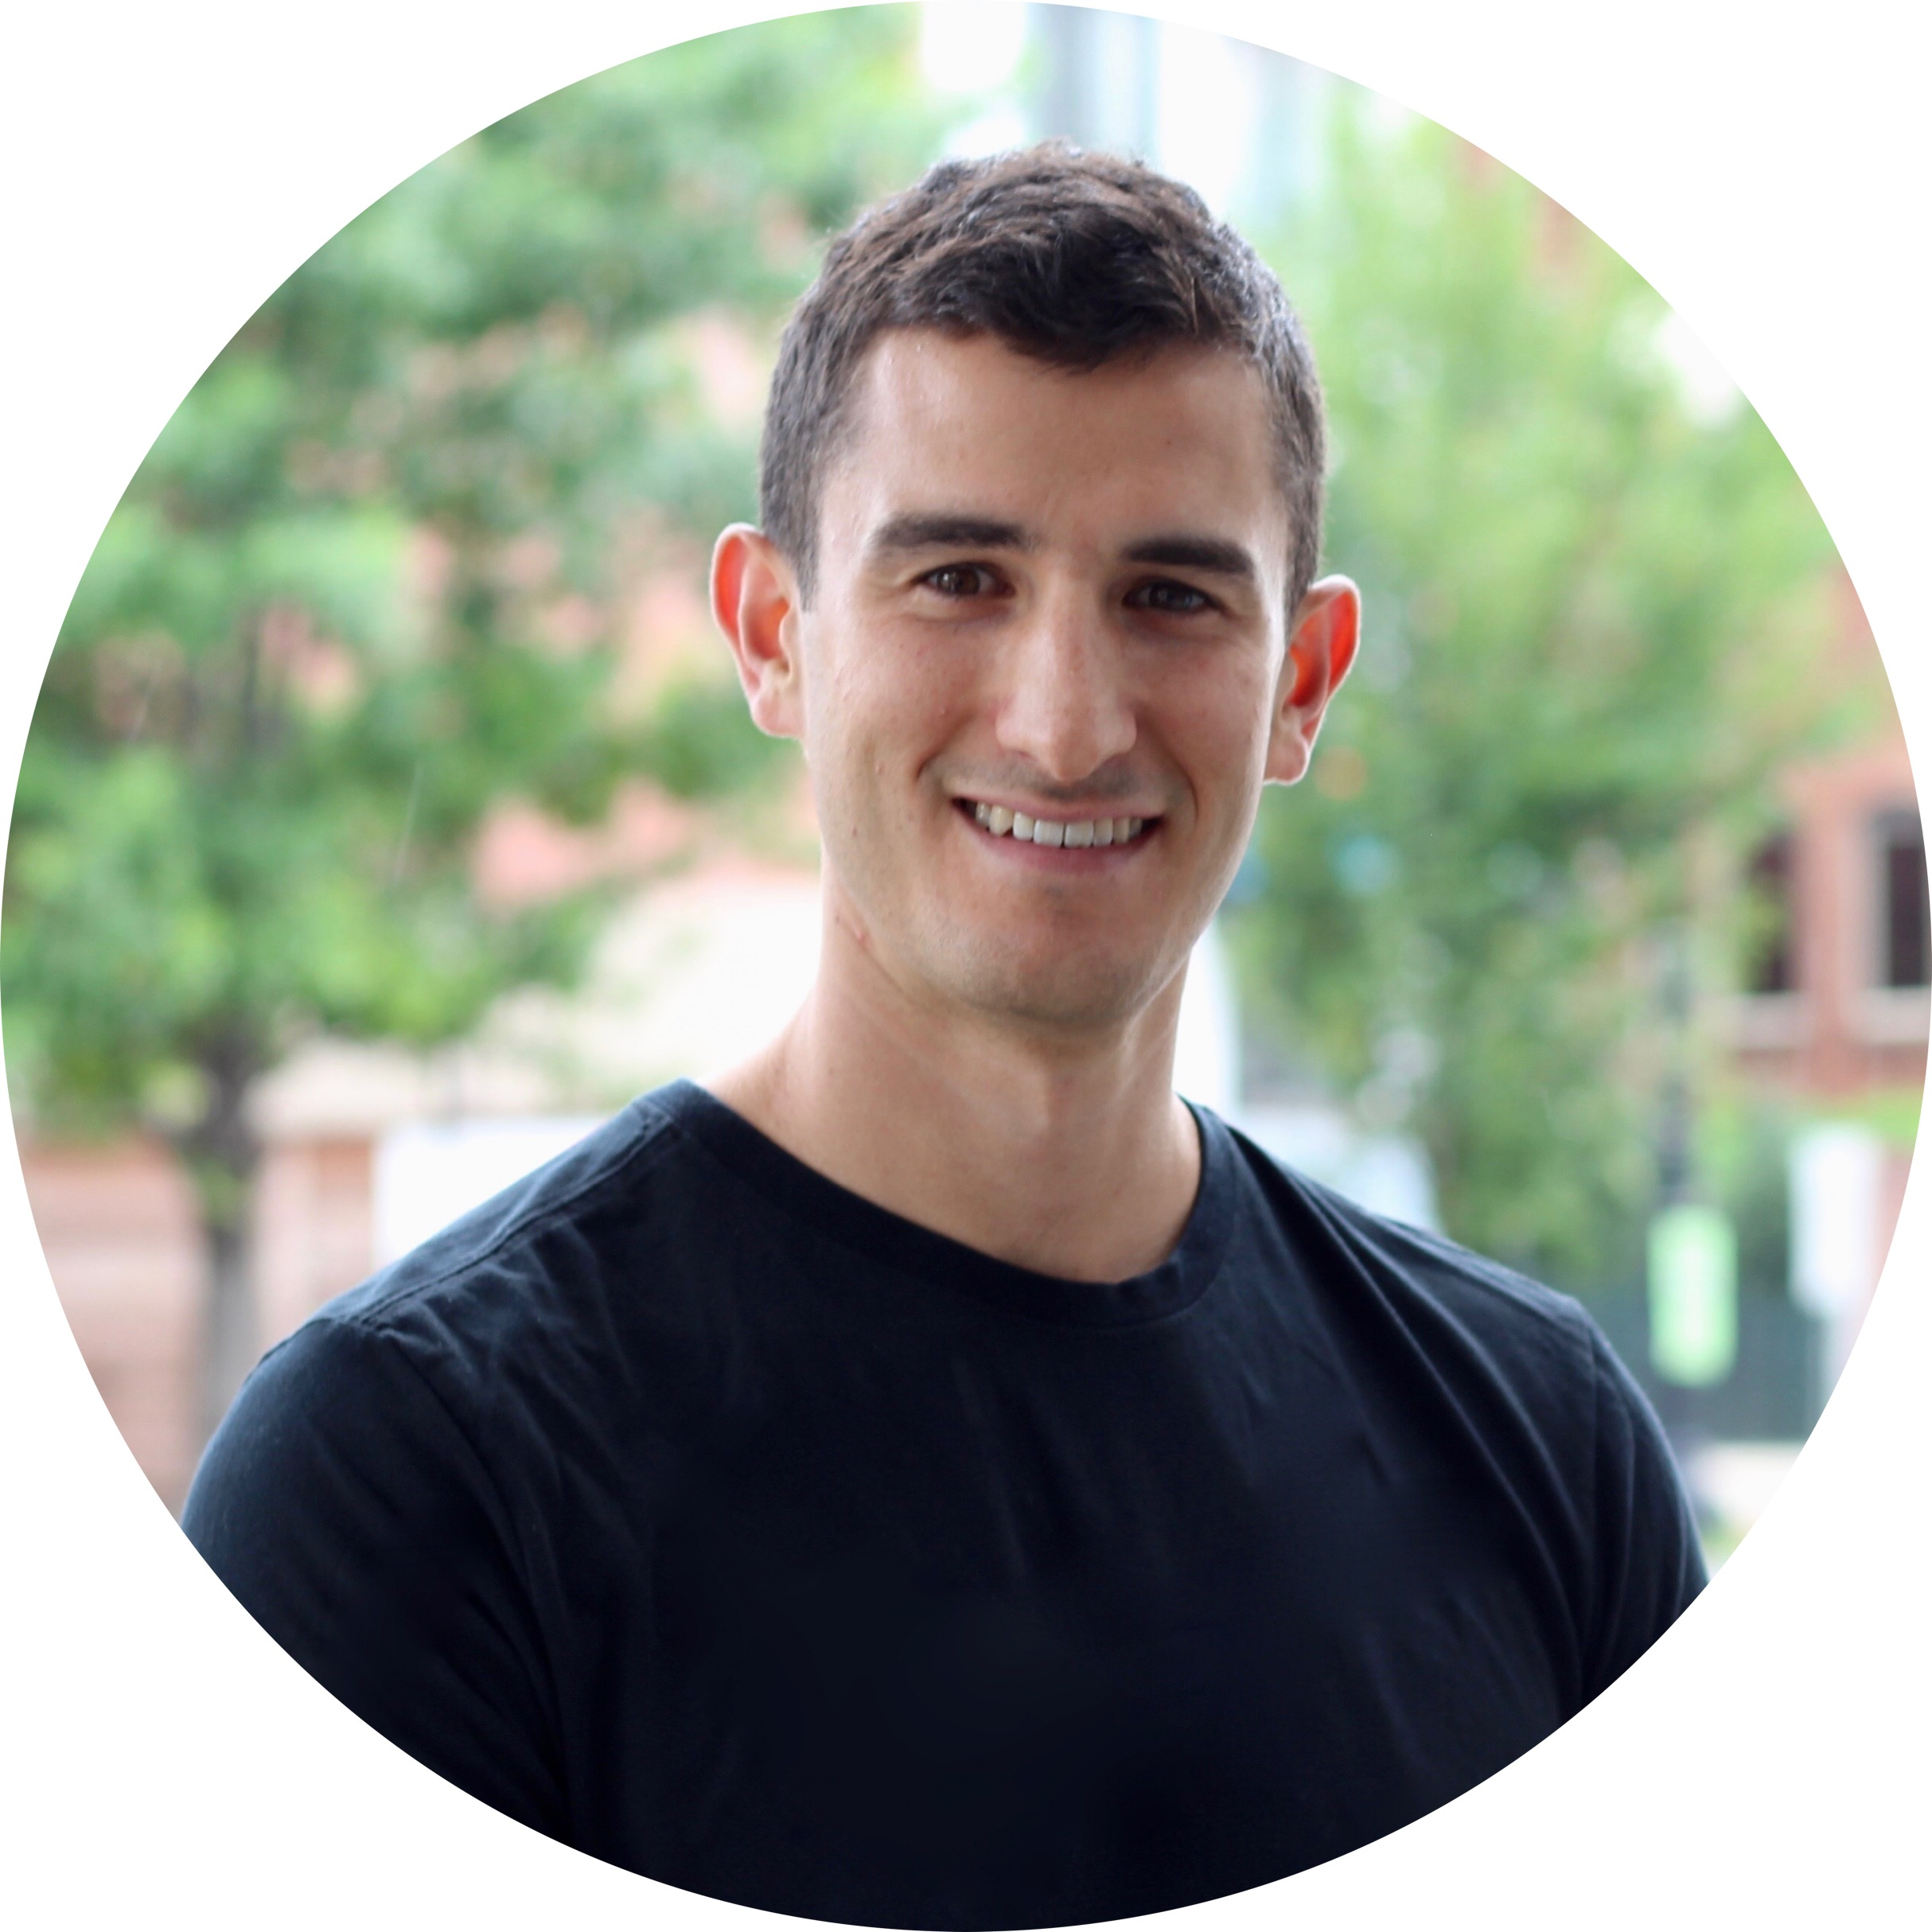 - Coach Joe BarliaCertificationsCSCS, PN-L1, CF-L1Previous Strength & Conditioning ExperienceRhodes College, Athletes' Performance (now EXOS), Balance Gym